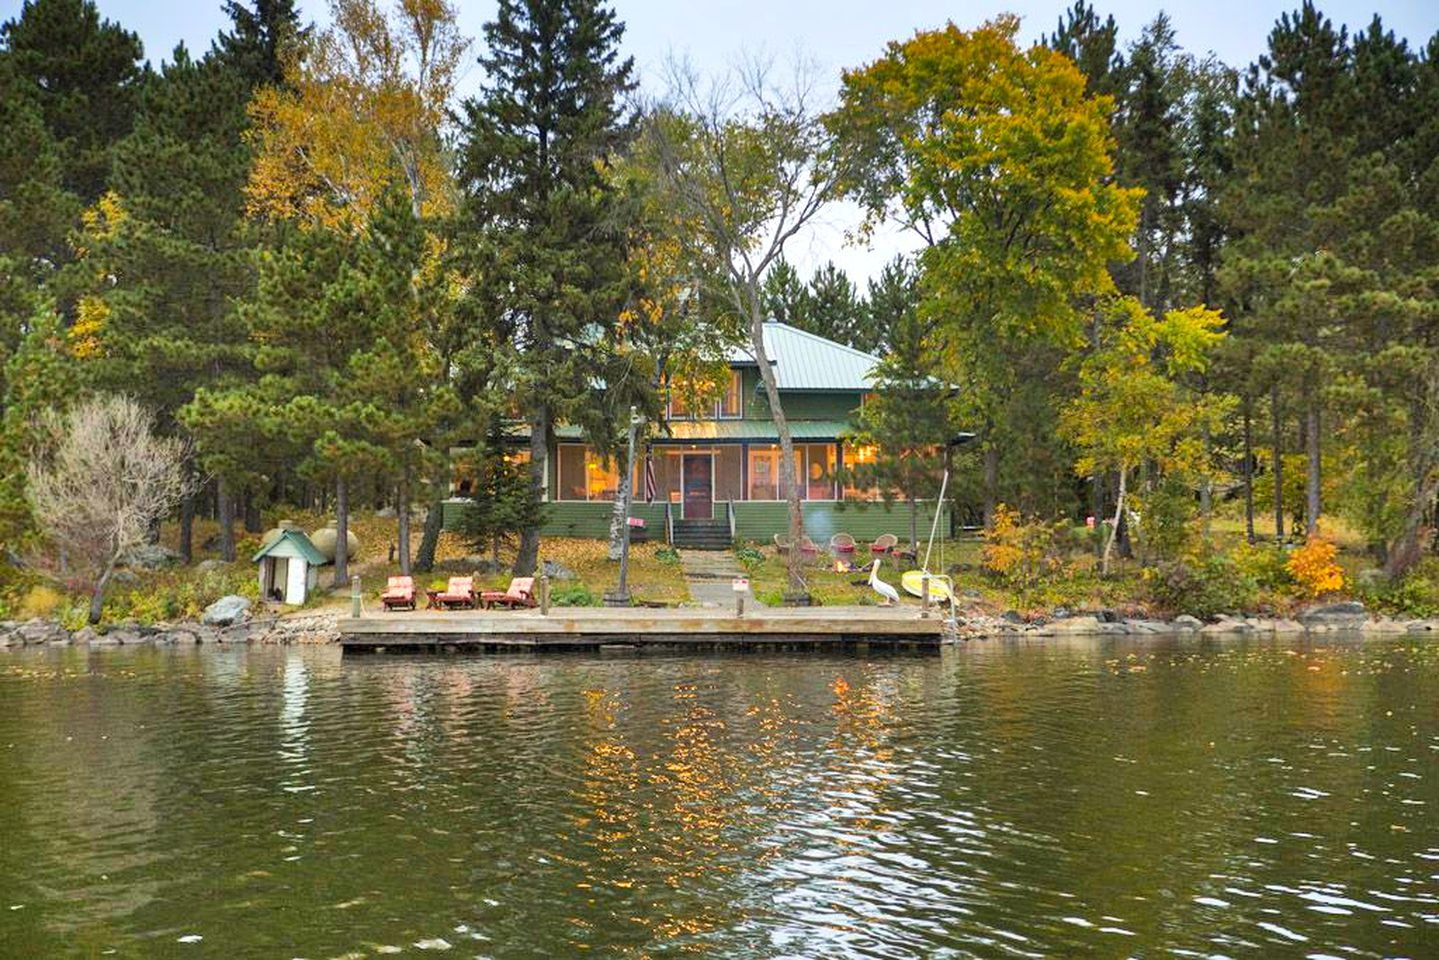 View from the water of a cabin rental on a private island in Minnesota.